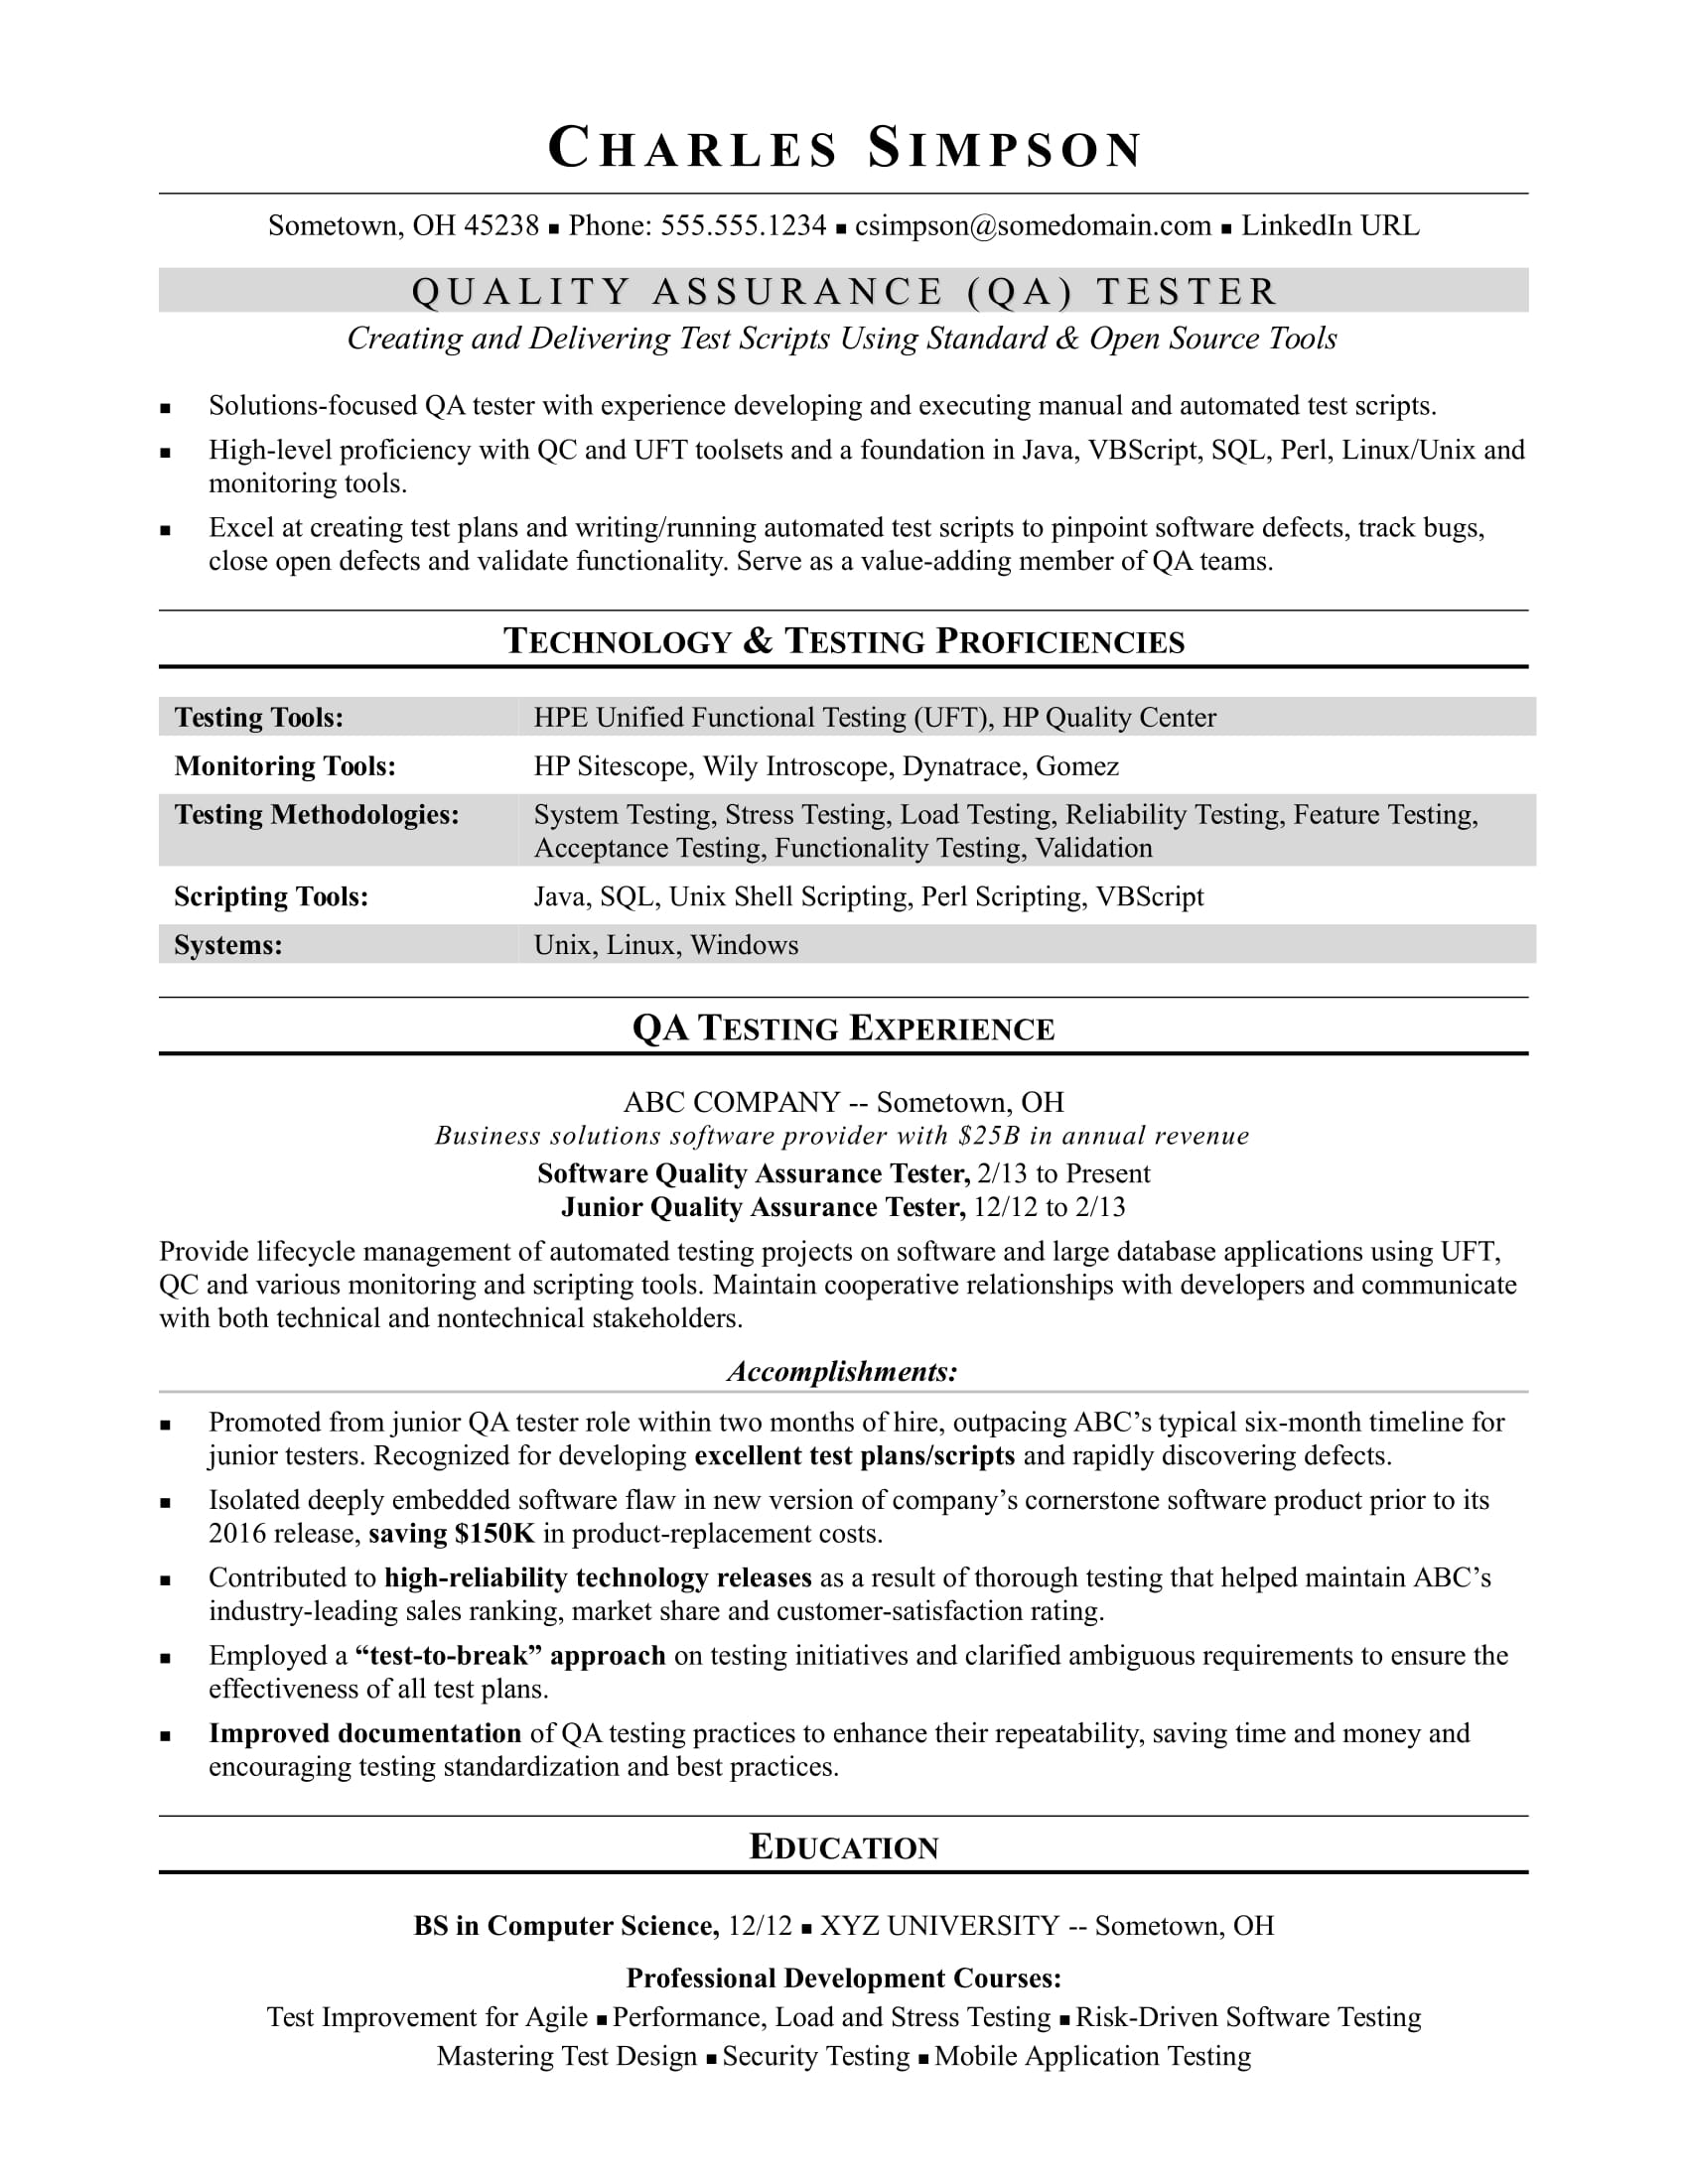 Amazing Sample Resume For A Midlevel QA Software Tester